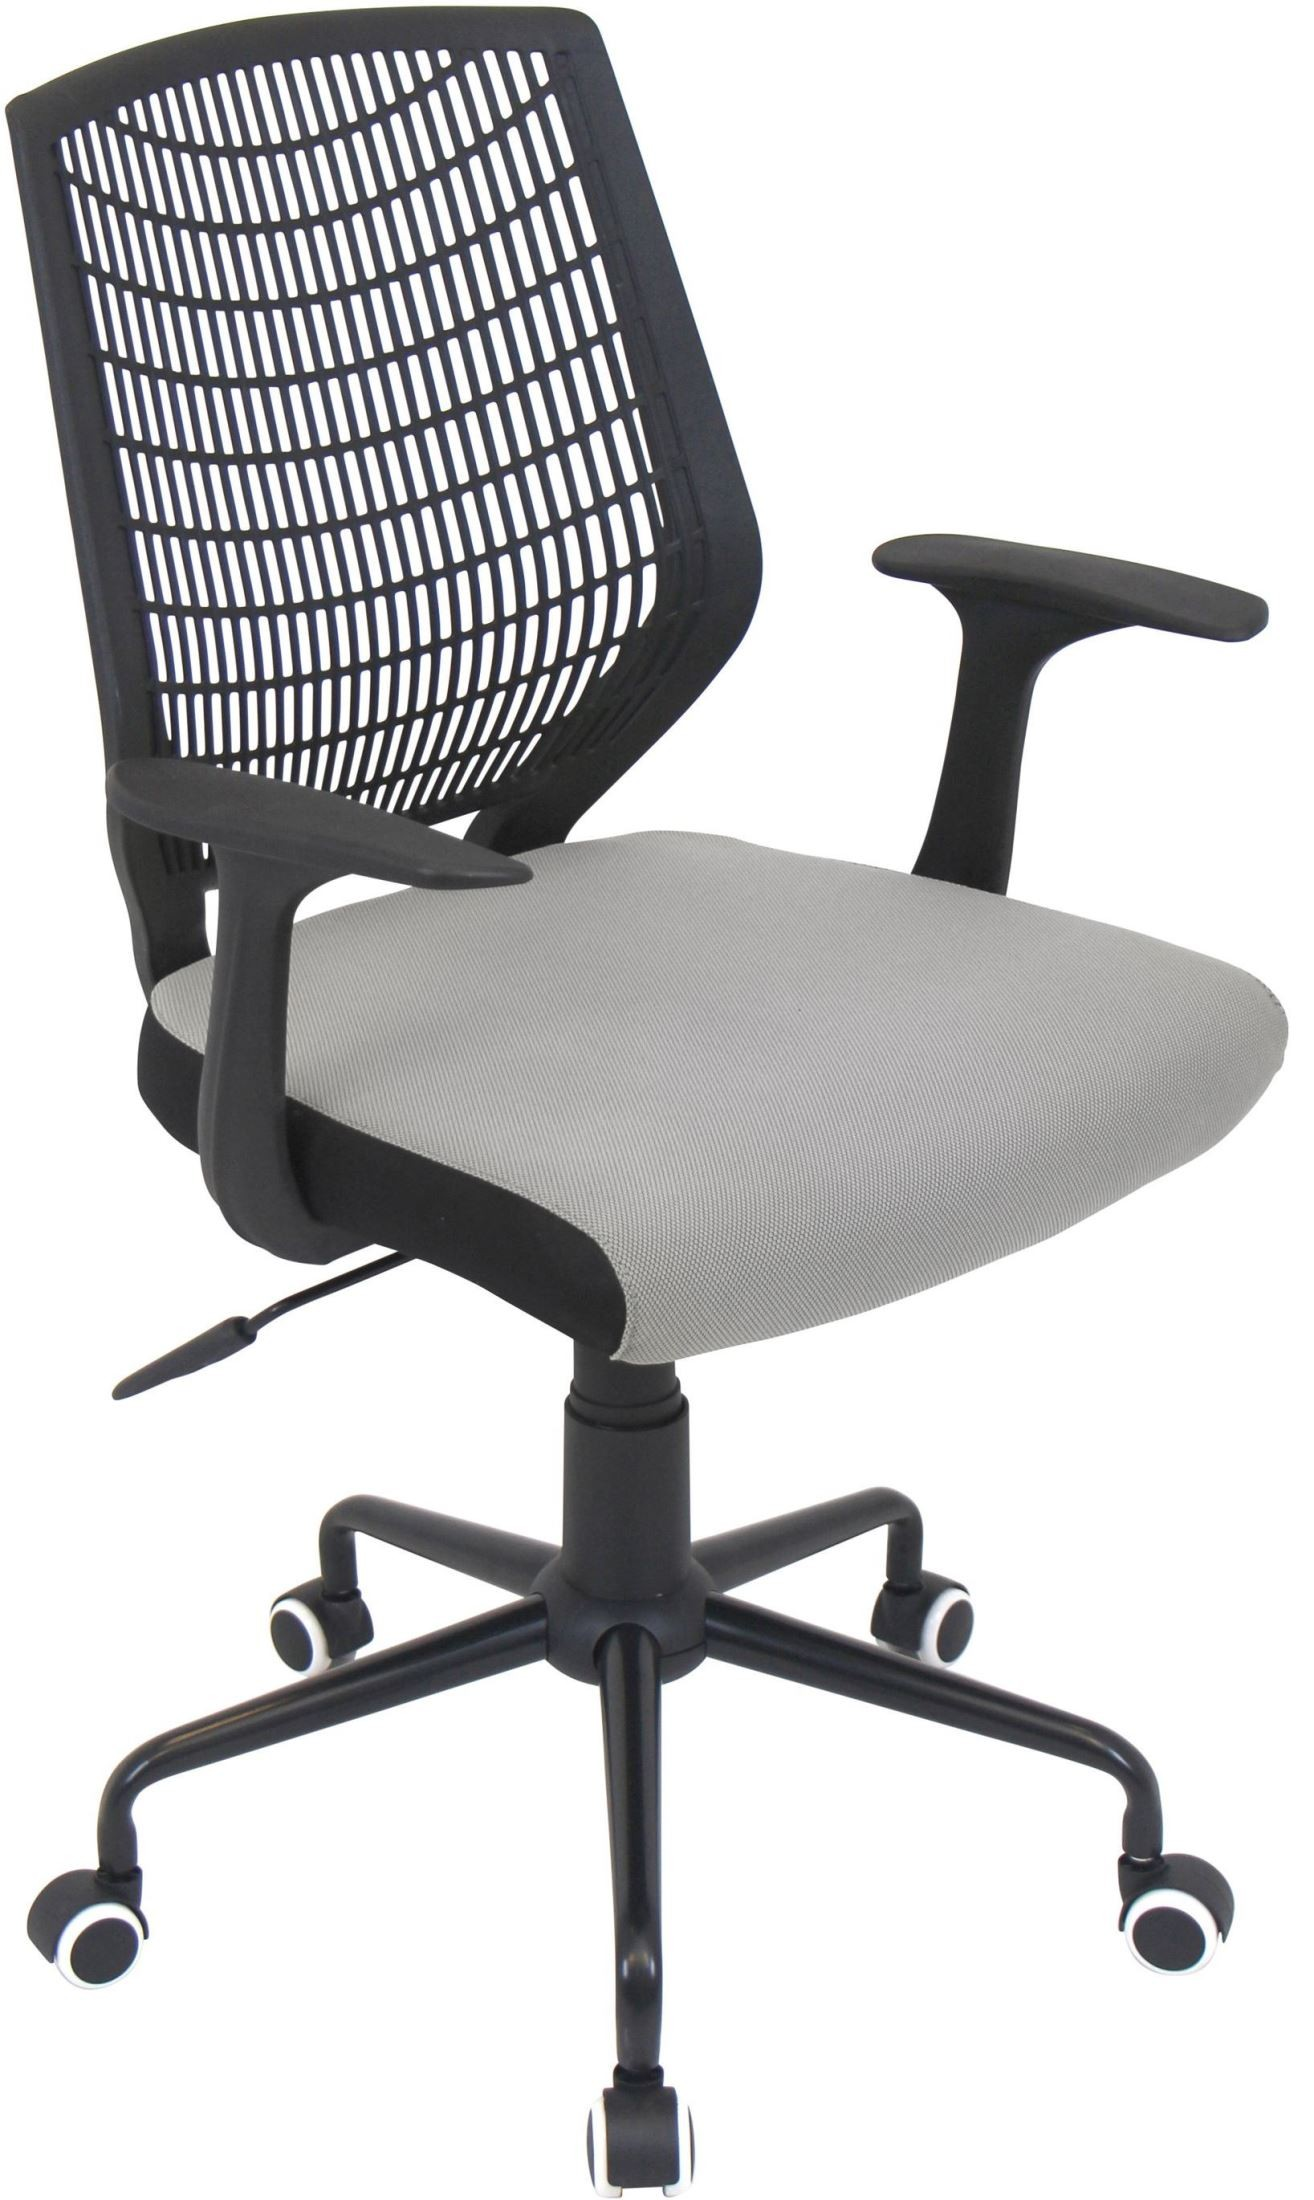 network silver office chair from lumisource ofc net bk sv coleman